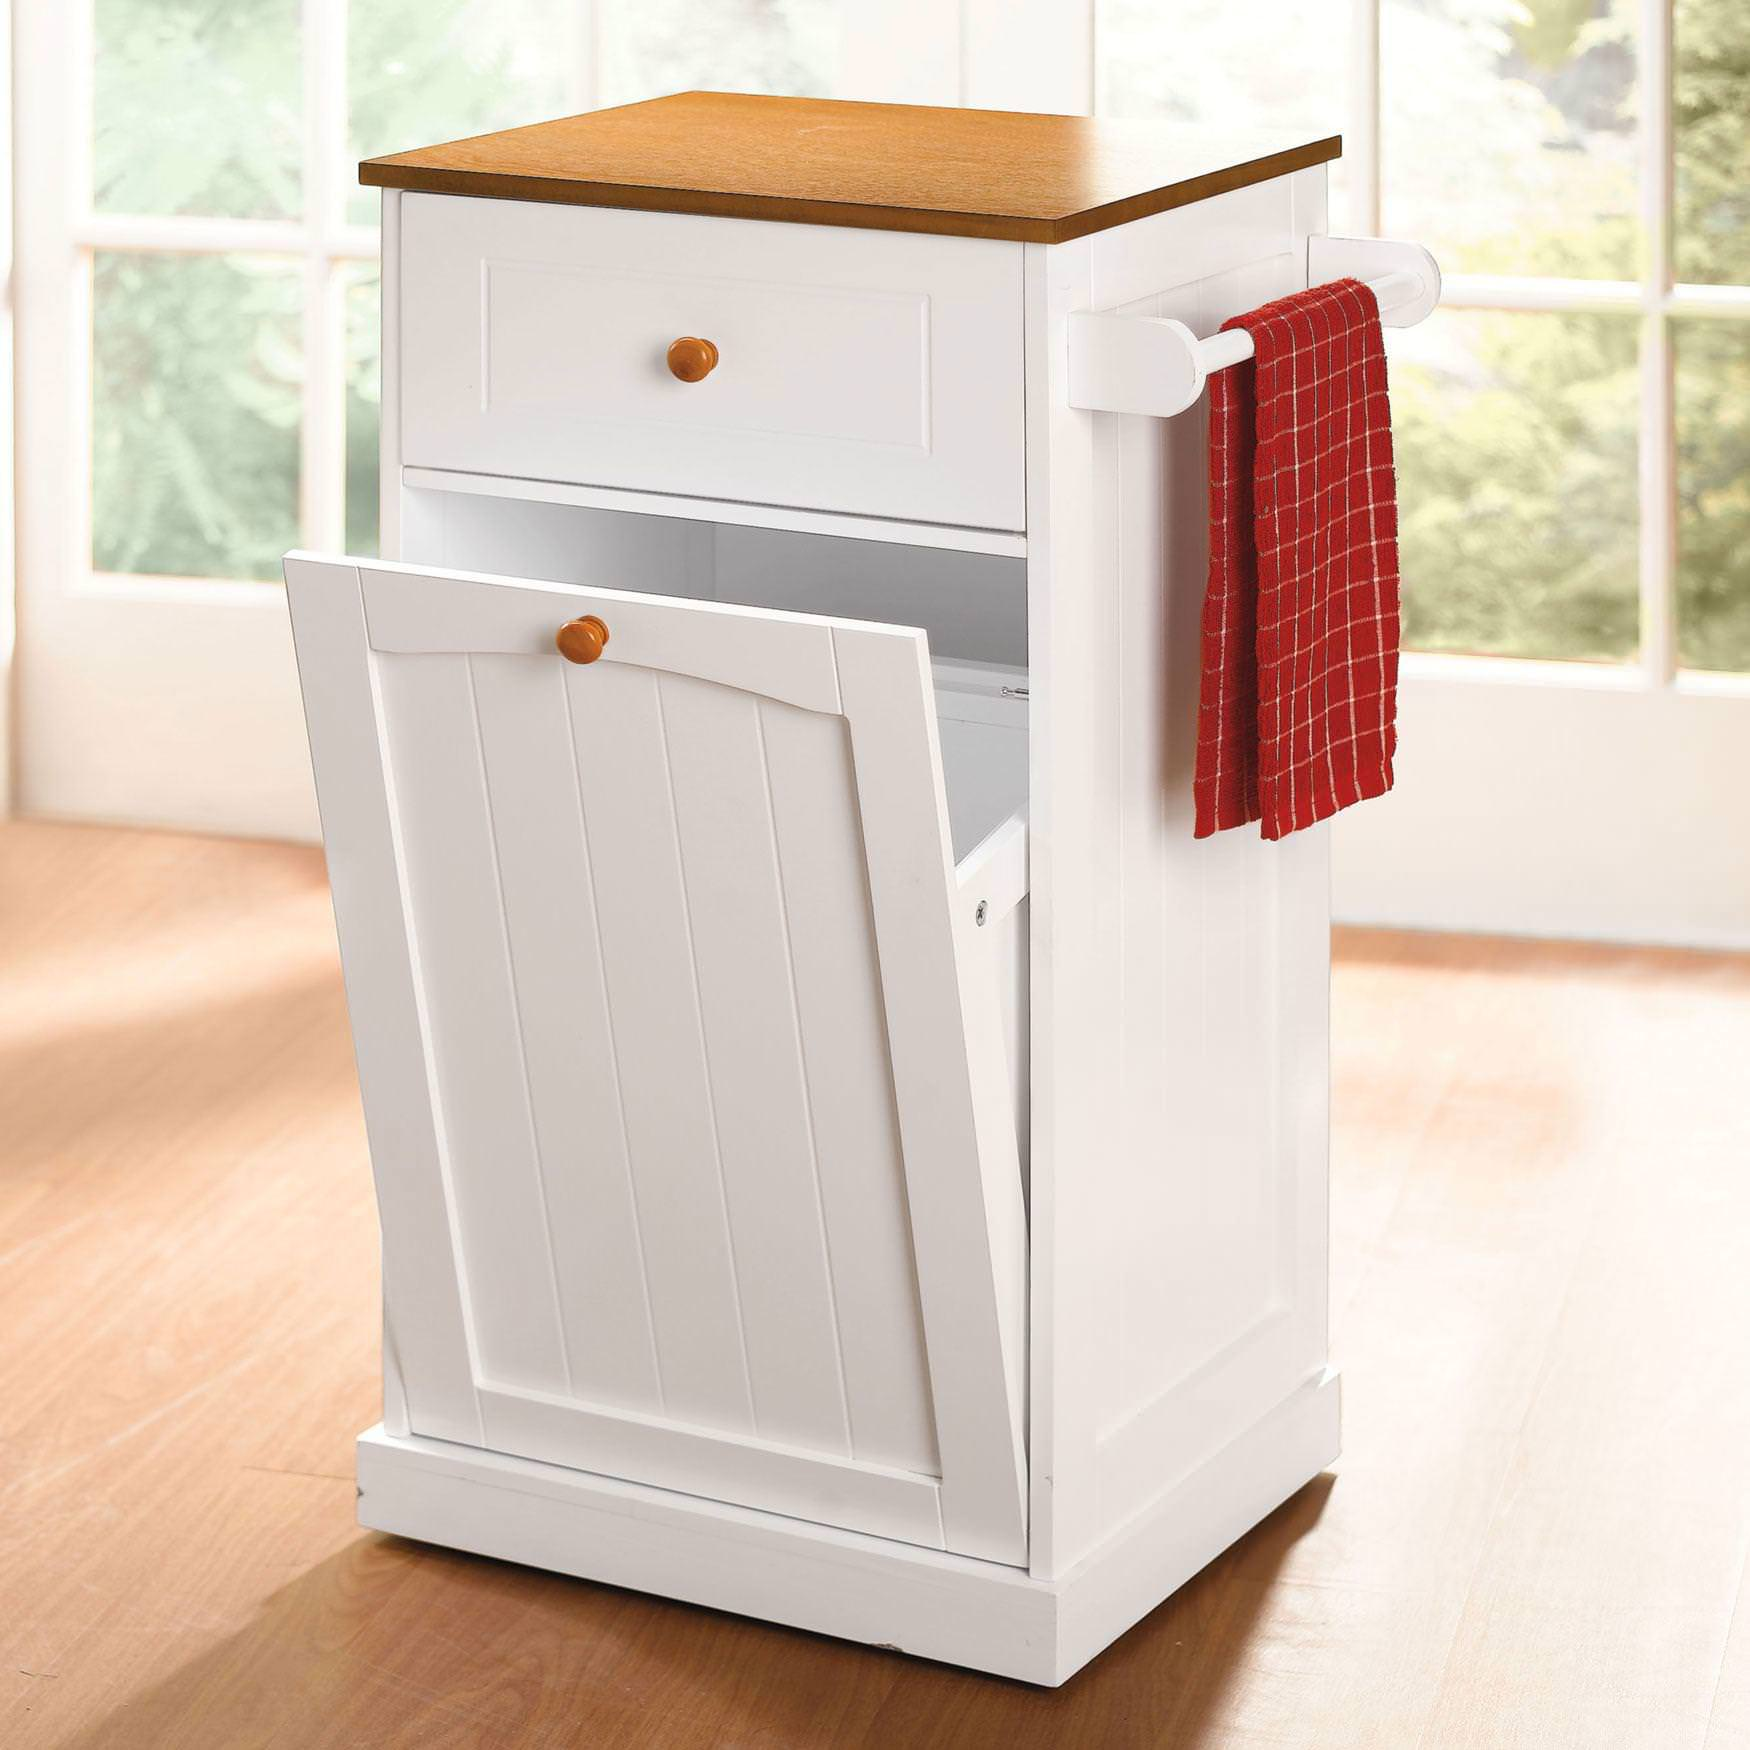 Image of: kitchen garbage cans 13 gallon